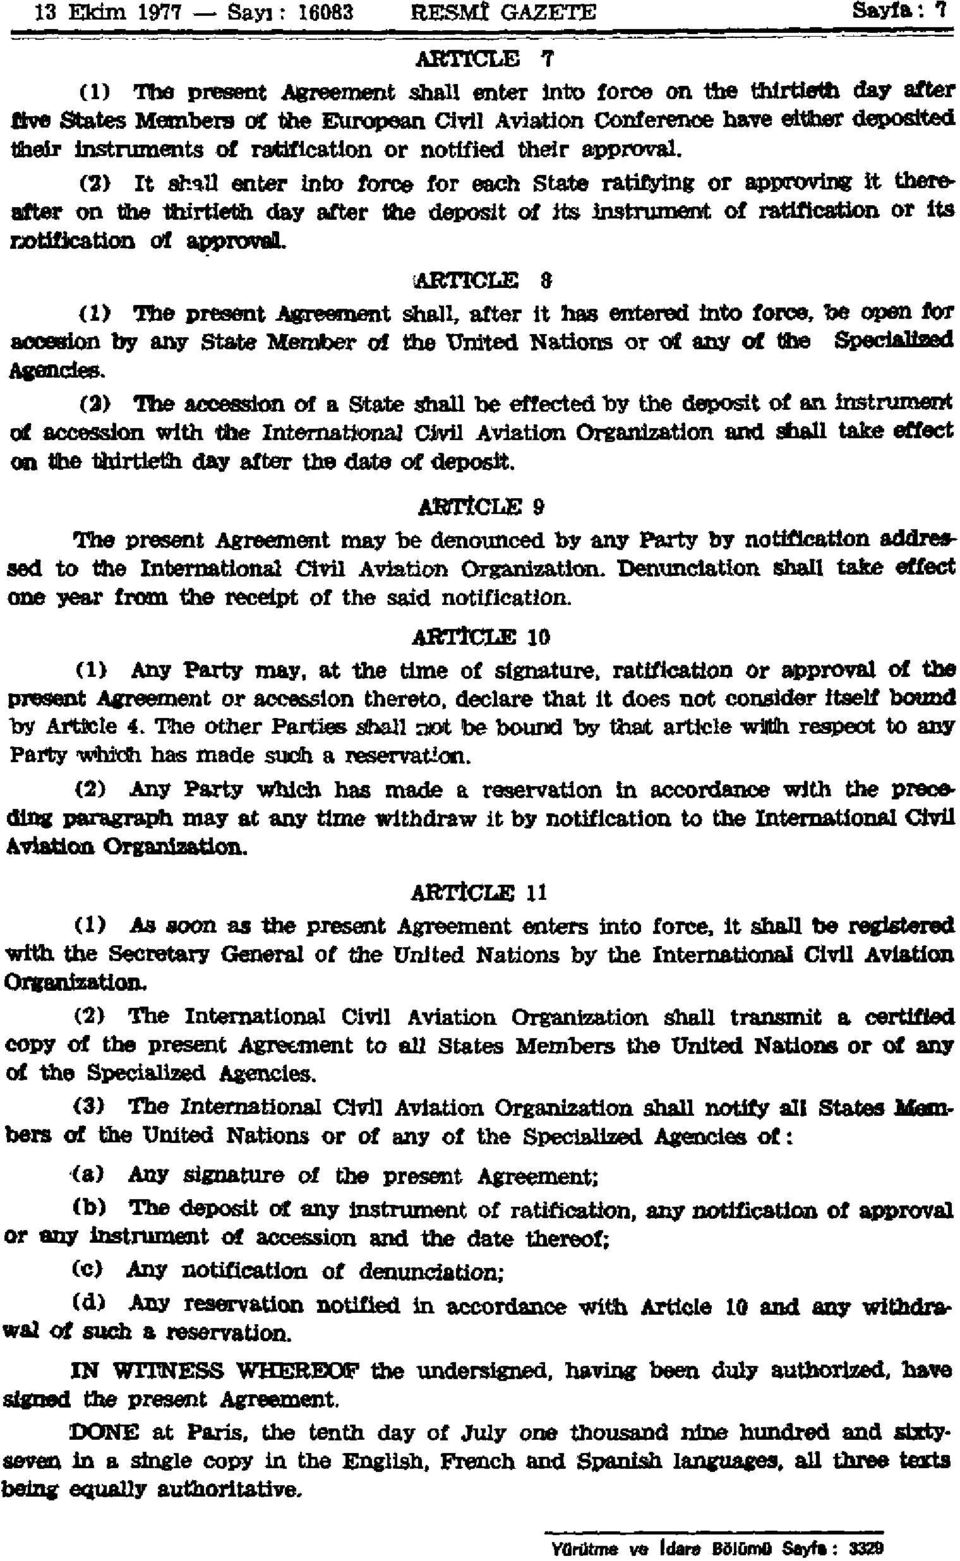 (2) It stall enter into force for each State ratifying or approving it thereafter on the thirtieth day after the deposit of its instrument of ratification or its notification of approval.